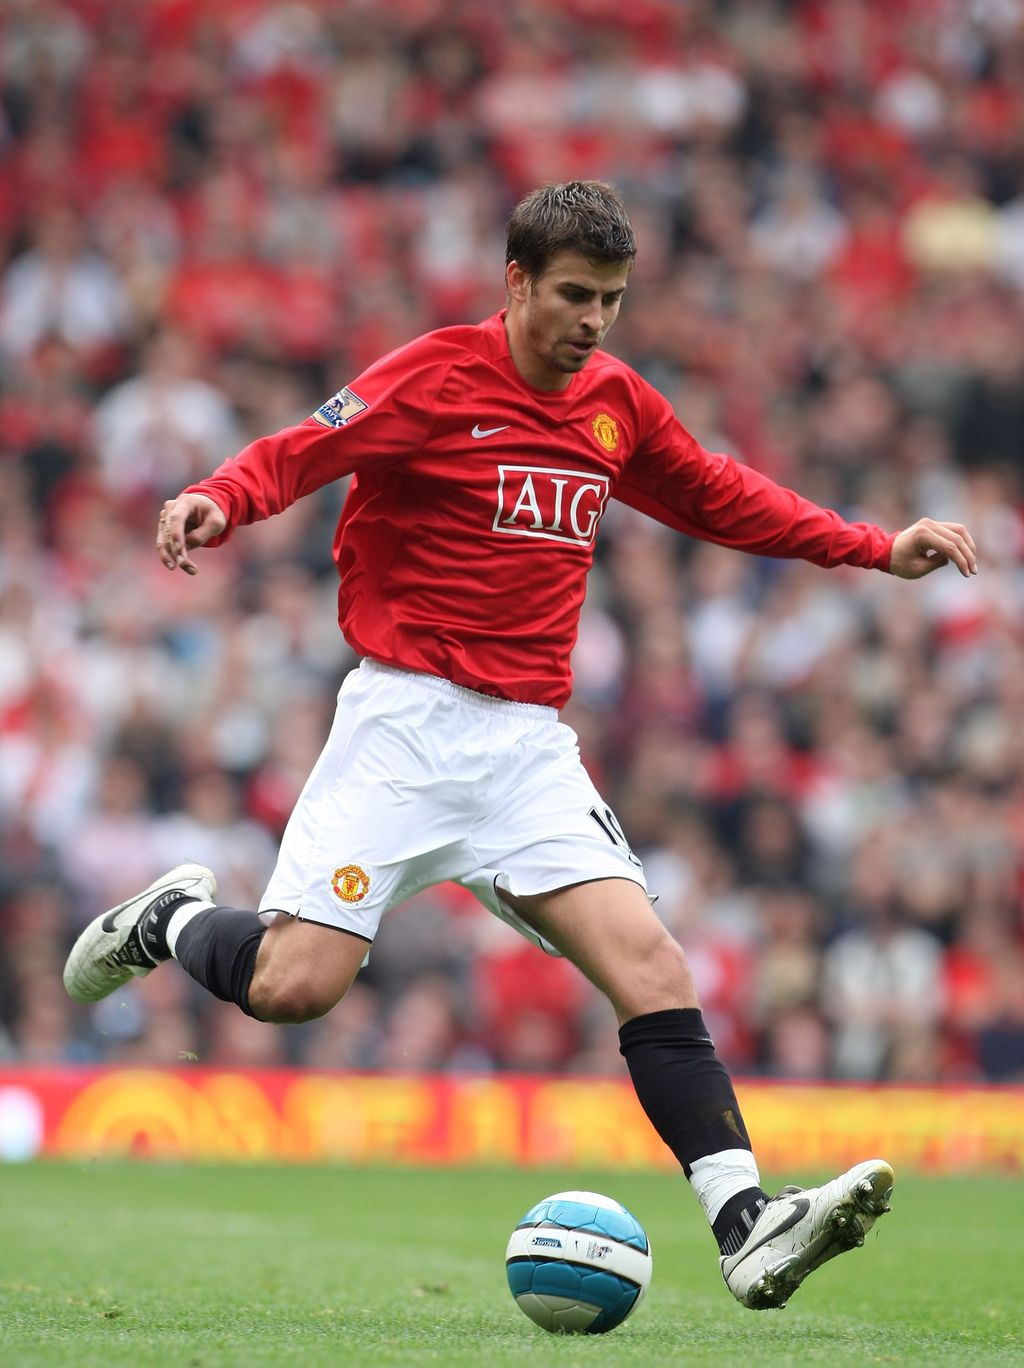 MANCHESTER, UNITED KINGDOM - OCTOBER 06: Gerard Pique of Manchester United during the Barclays Premier League match between Manchester United and Wigan Athletic at Old Trafford on October 06, 2007 in Manchester, England. (Photo by Phil Cole/Getty Images)